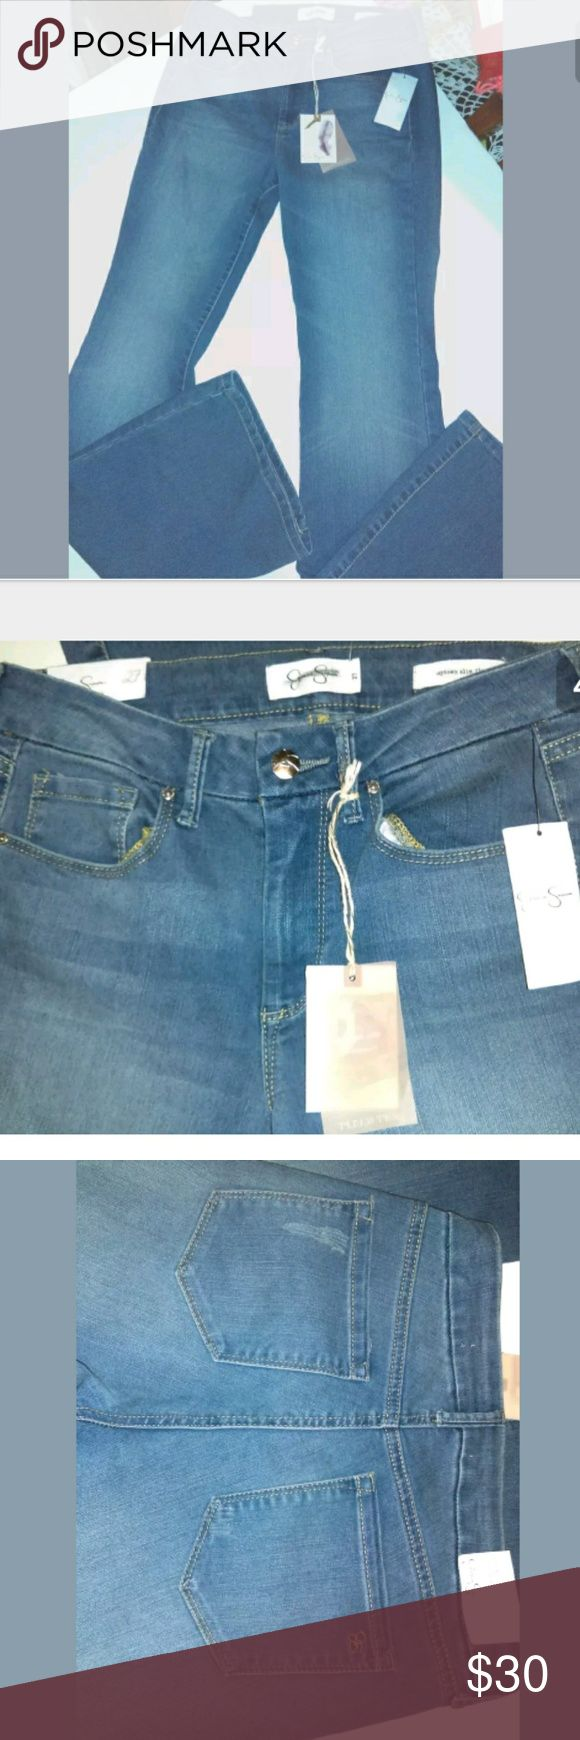 """Jessica Simpson Uptown Slim Flare Light Blue Jeans Brand new Jessica Simpson Uptown Slim Flare Light Blue Jeans. """"Ultra Slimming, Flawless Fit, Soft Sculpt"""" design. Size 27 Flare pant legs 5 pocket style Factory Fading Factory Whiskering (Back Pockets) Button and zip fly closure Approx measurements: Rise - 9 3/4"""" Back Rise - 13 3/4"""" Leg Opening - 21"""" Inseam - 34 1/2"""" Waist - 14"""" (side to side) MSRP $69 Cotton, Viscose, Polyester & Elastane blend ***Please note*** This item has…"""